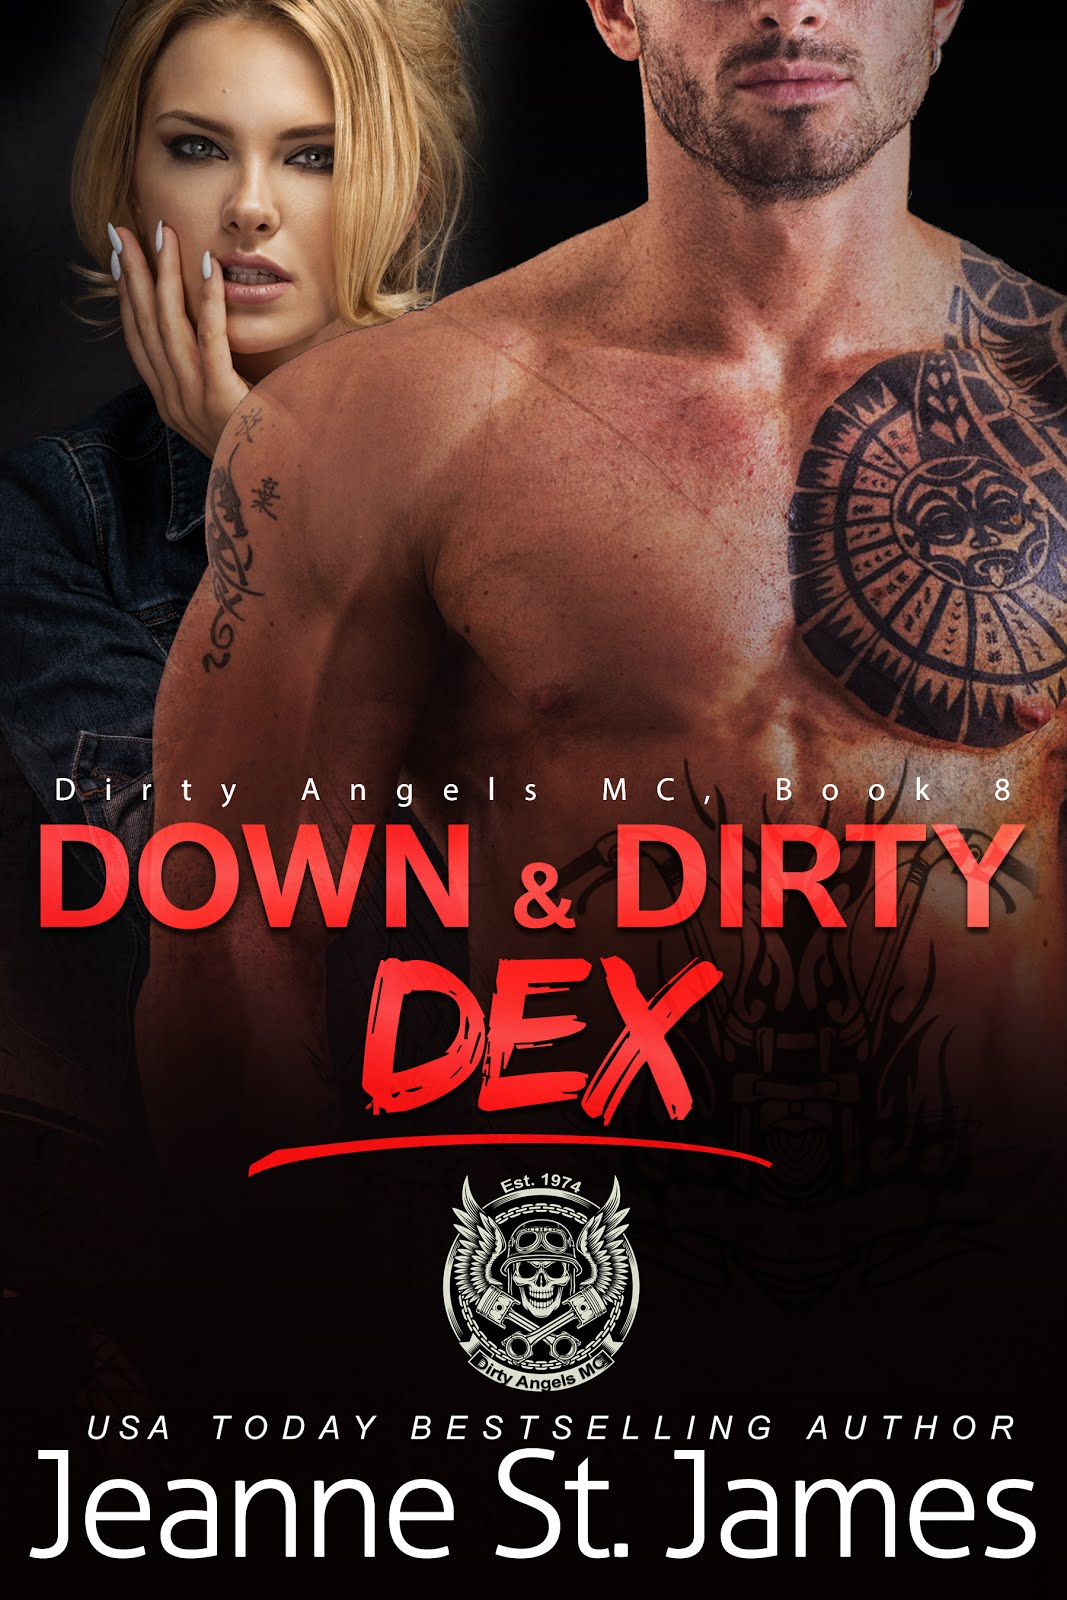 Down & Dirty: Dex